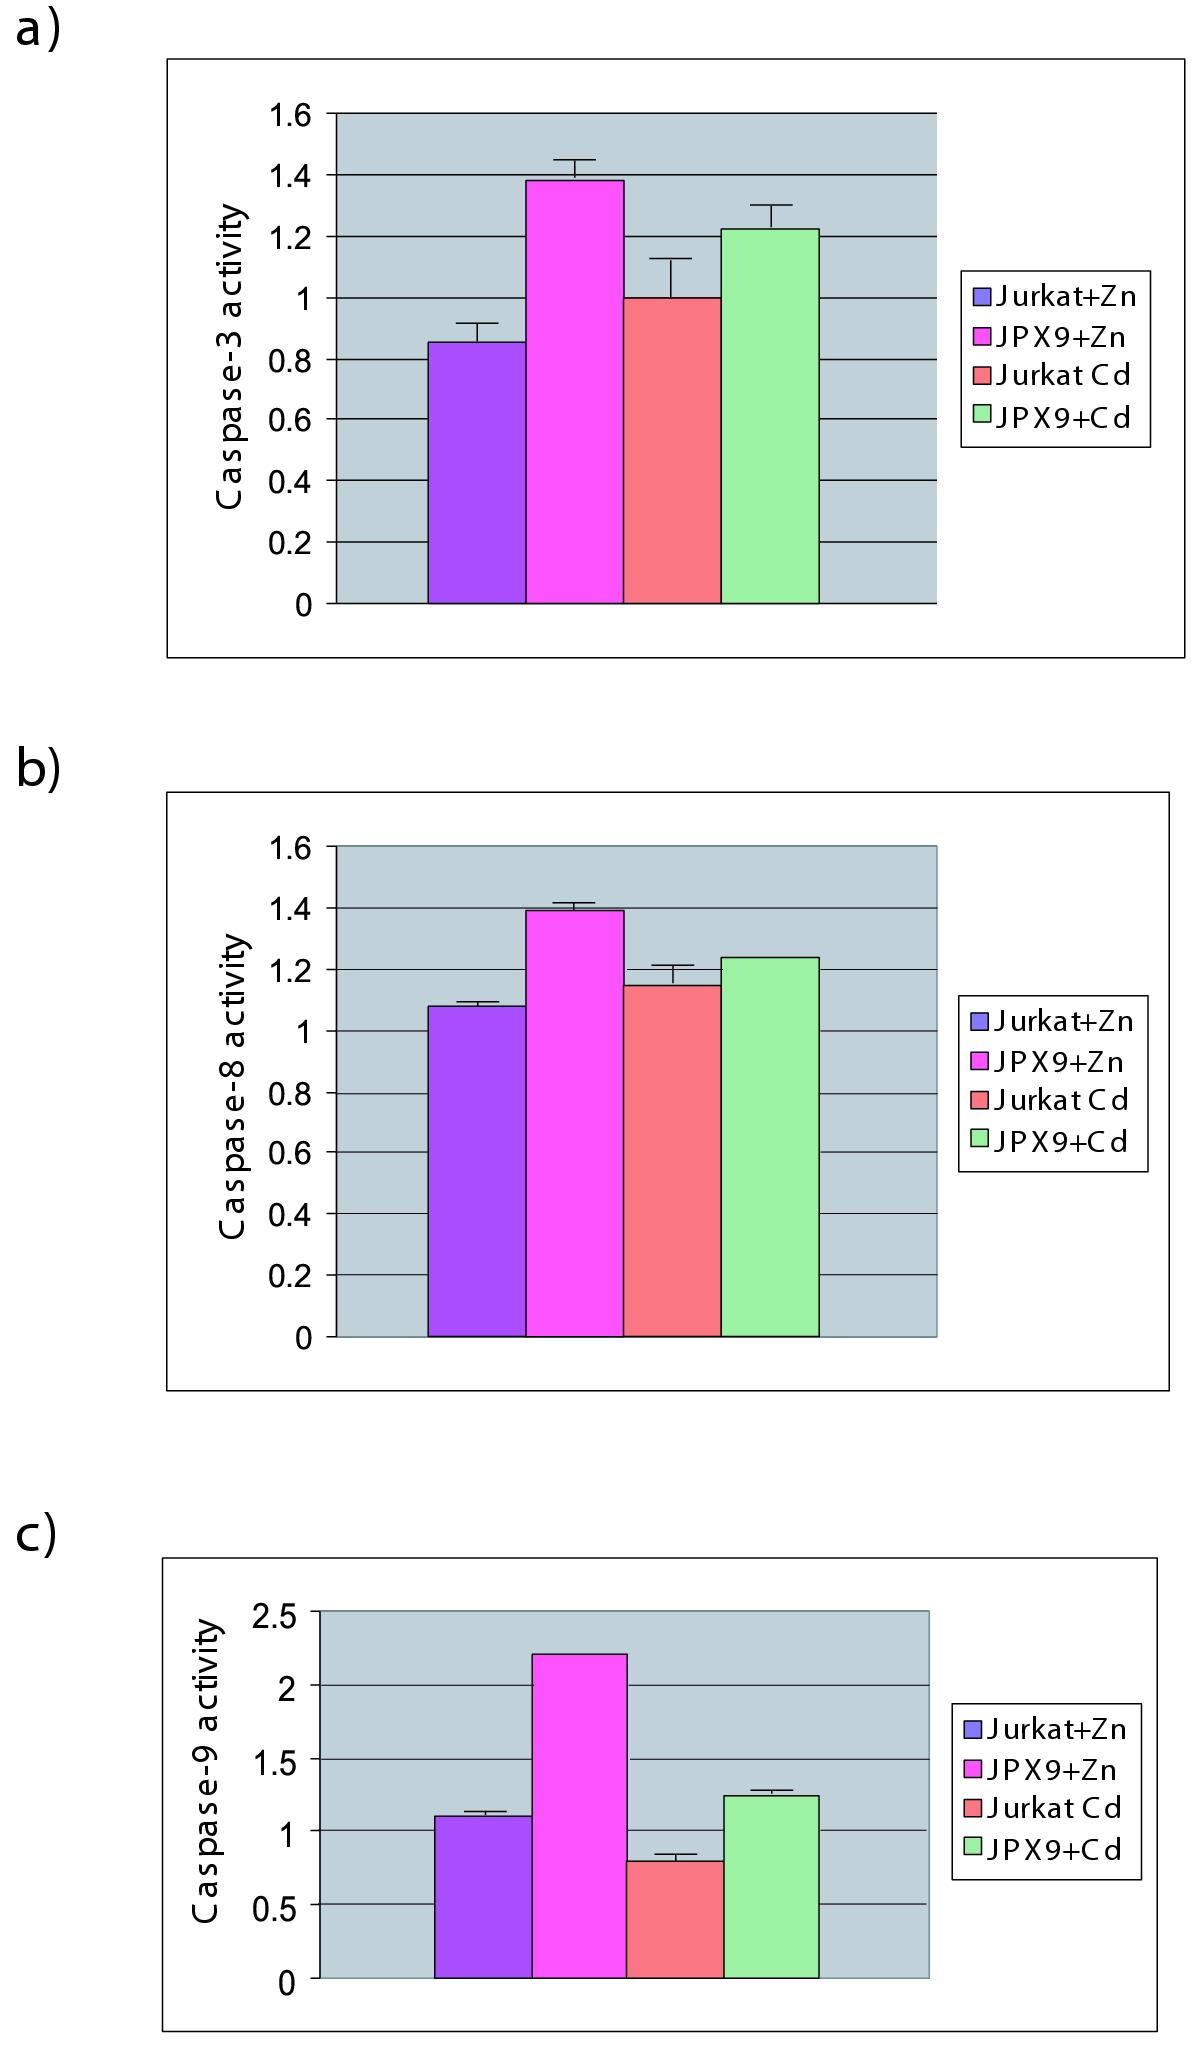 https://static-content.springer.com/image/art%3A10.1186%2F1742-4690-1-7/MediaObjects/12977_2004_Article_7_Fig6_HTML.jpg